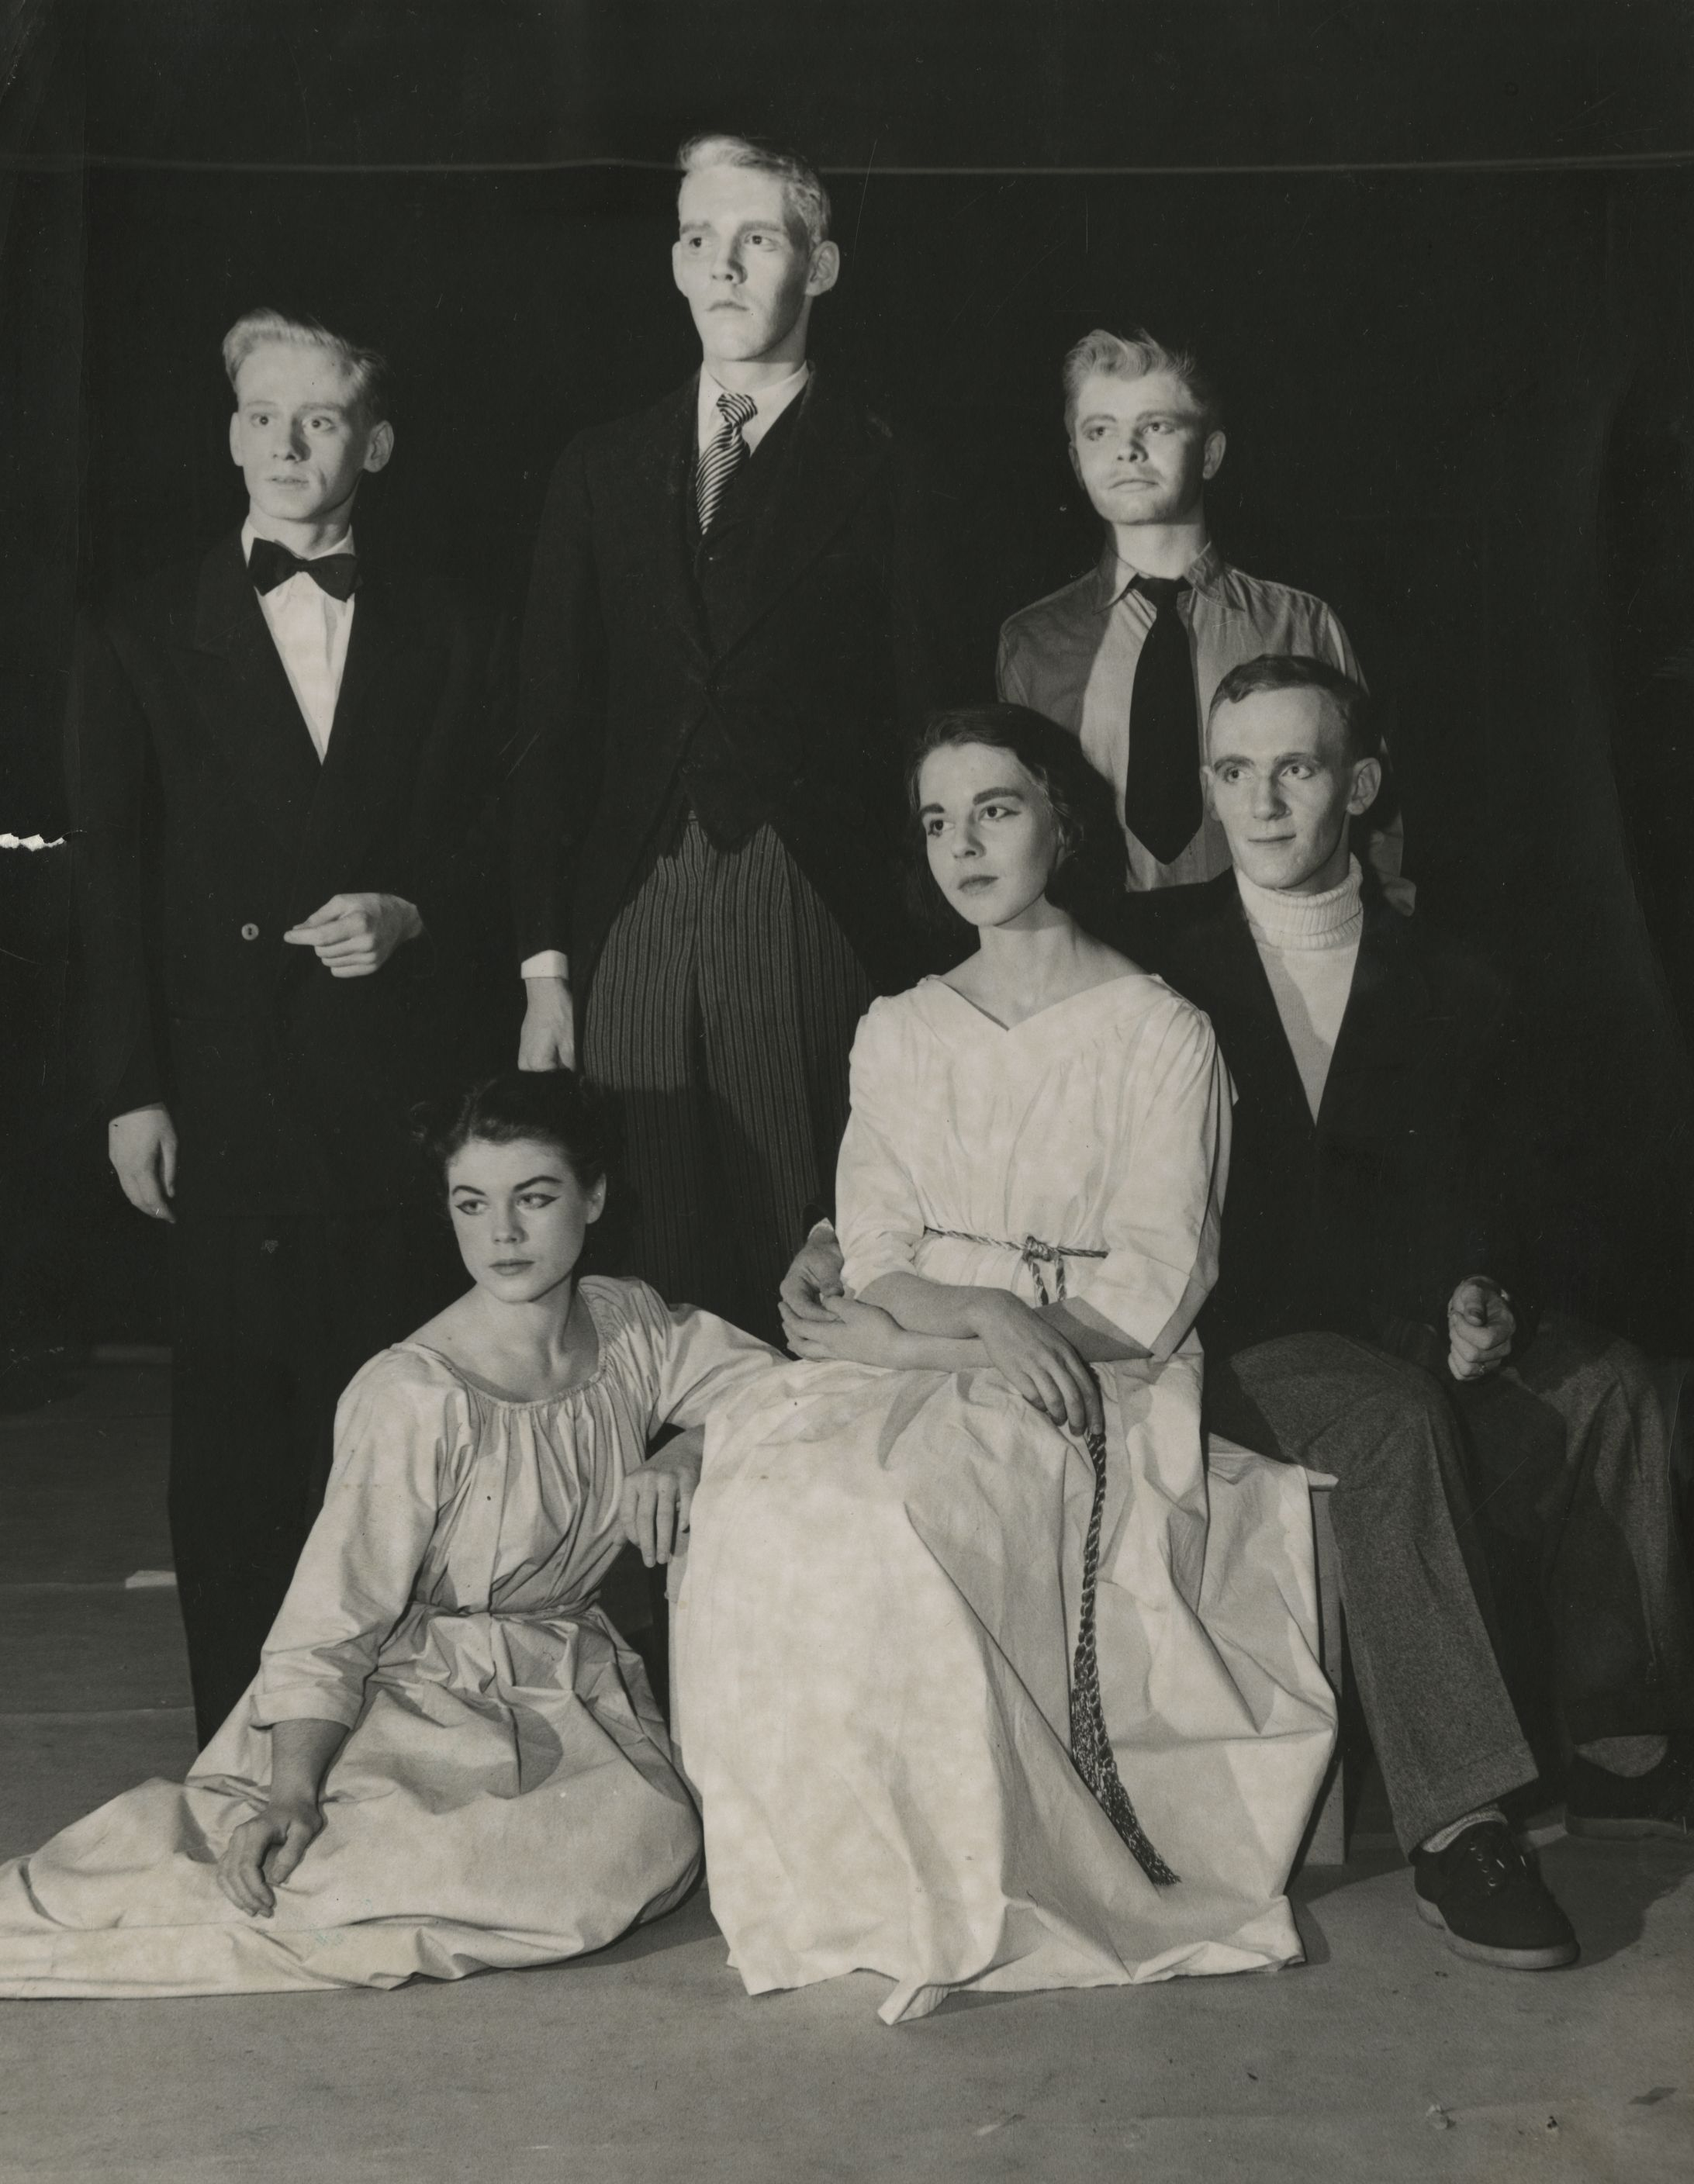 Six cast members sitting or standing together on stage in costume. The women wear simple white dresses while the men are wearing suits and tuxedos.